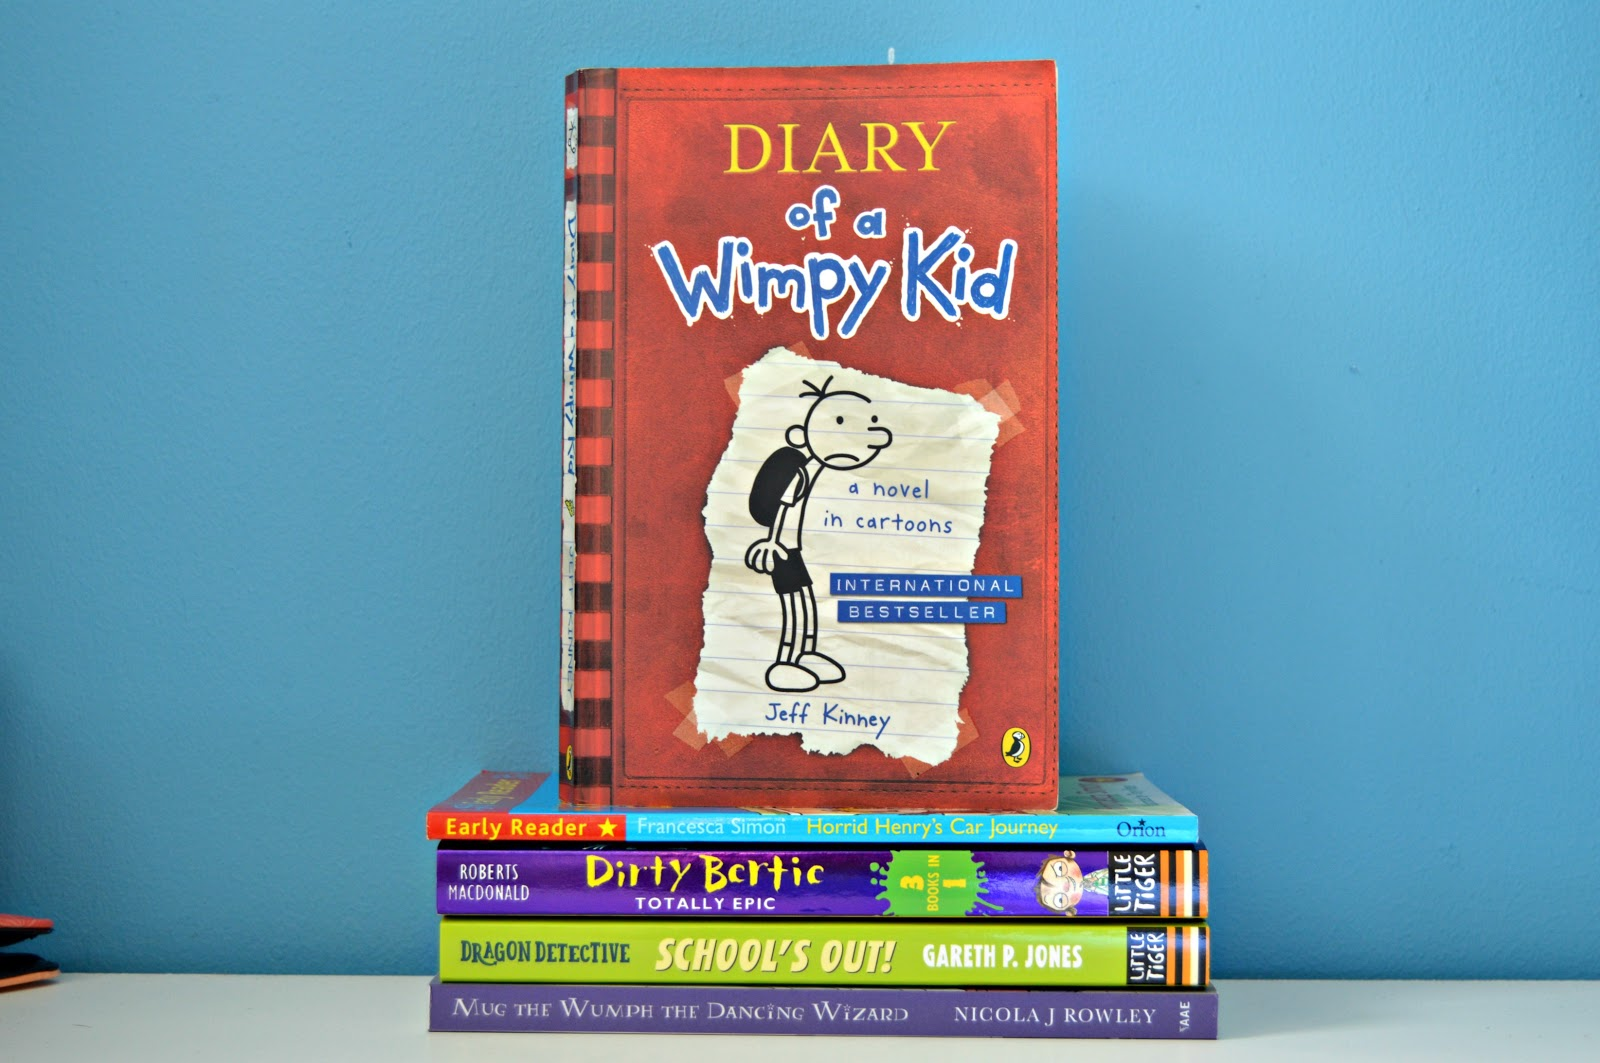 Diary of the wimpy kid book